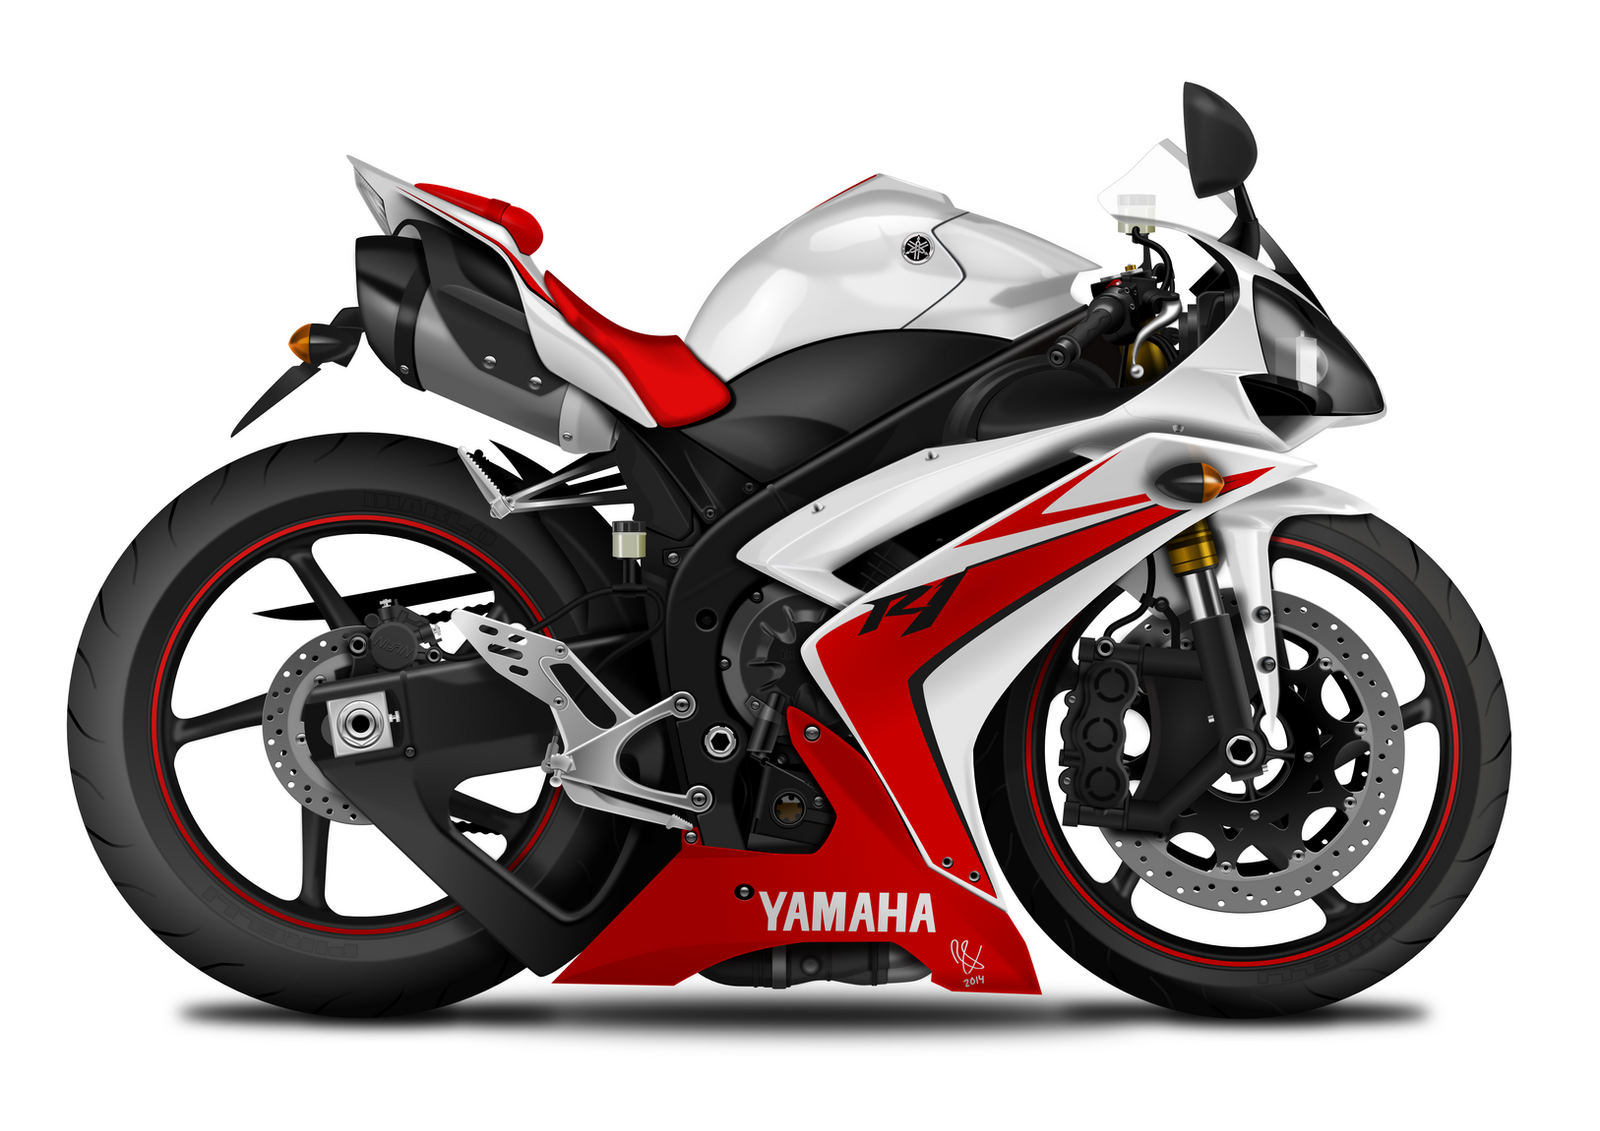 Yamaha yzf r1 white red 2007 caricature by ronvds on for 2007 yamaha yzf r1